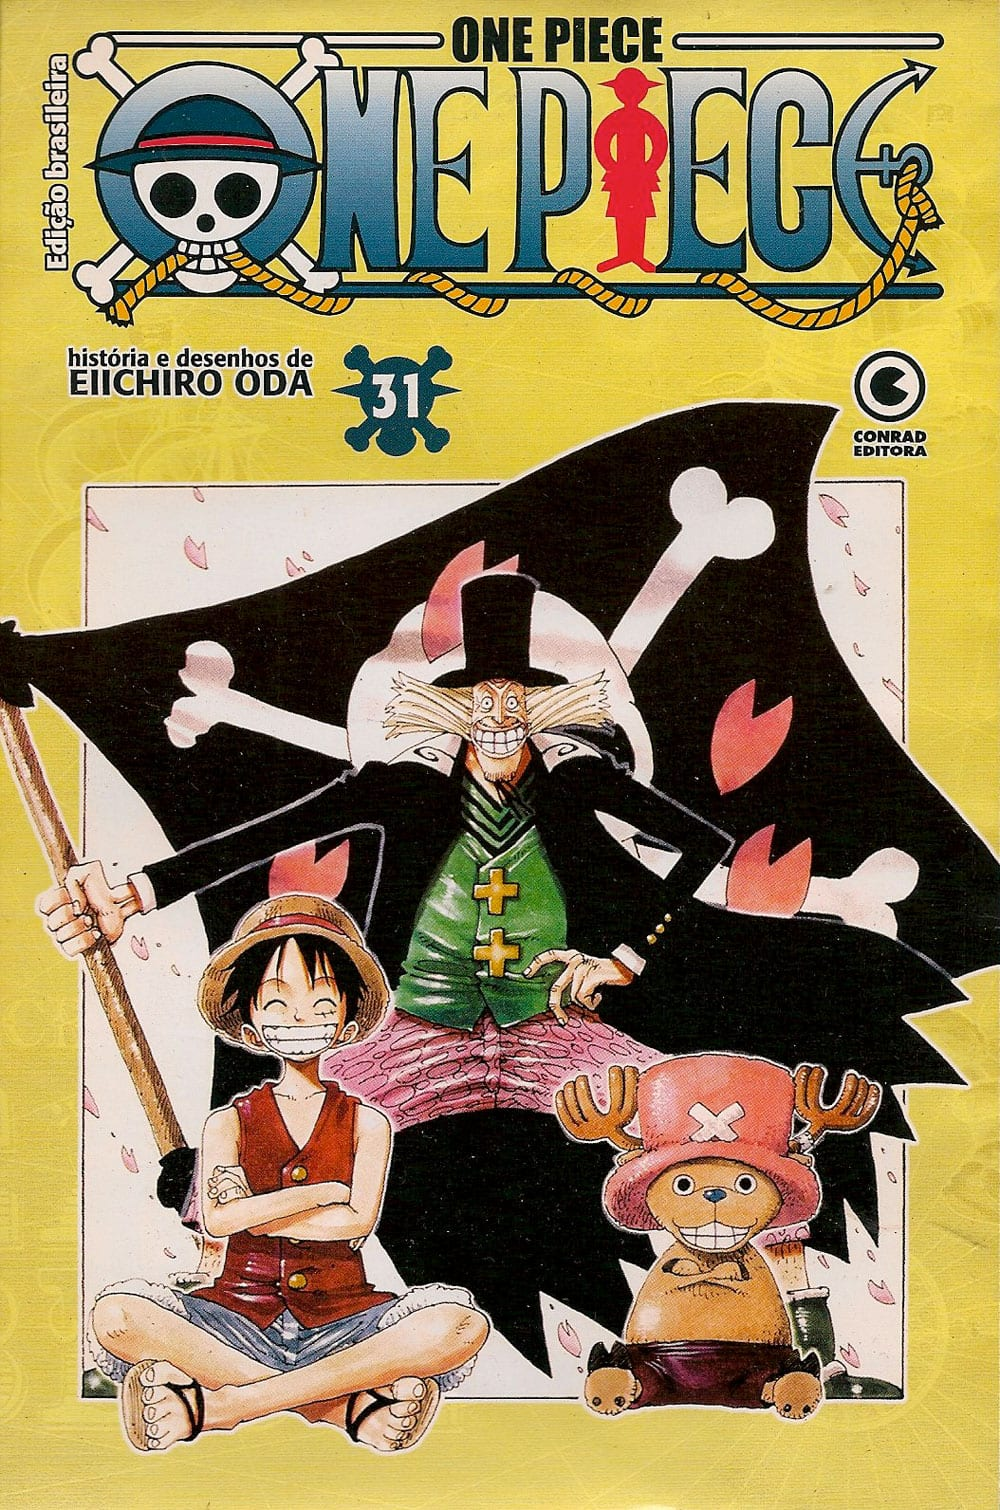 Capa: One Piece - Conrad 31